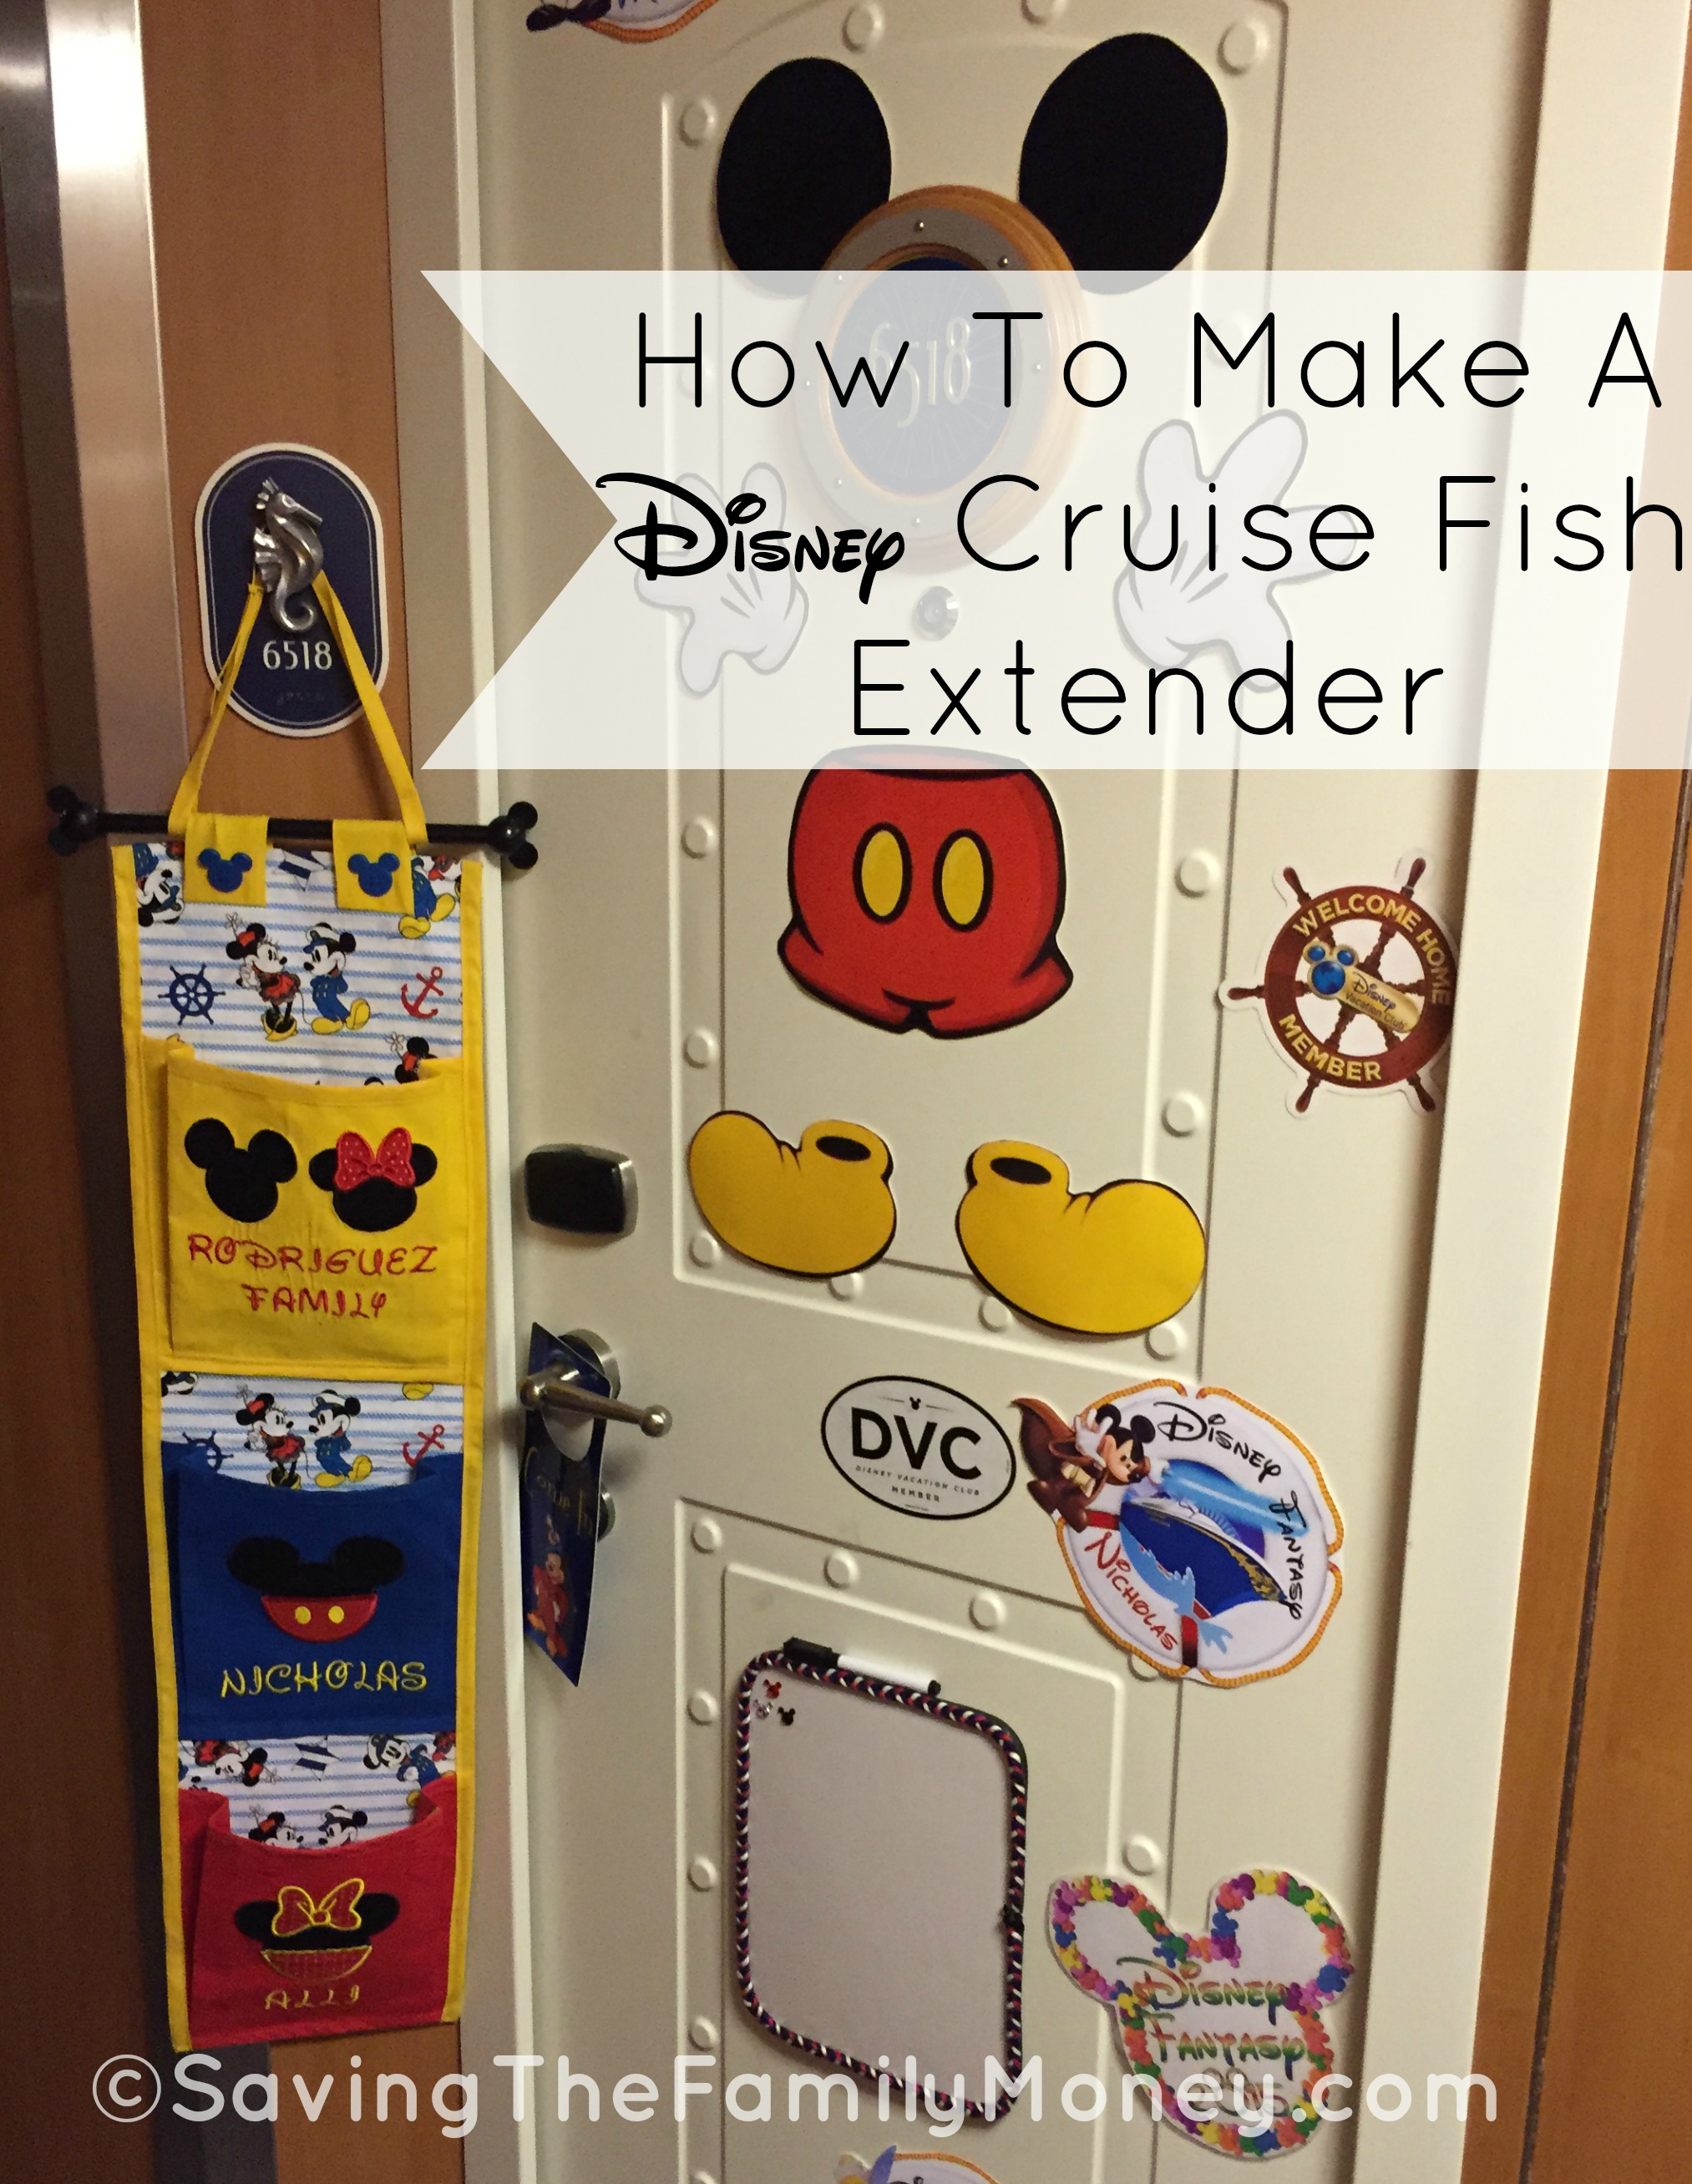 Fish Extender Gifts Disney Cruise Line